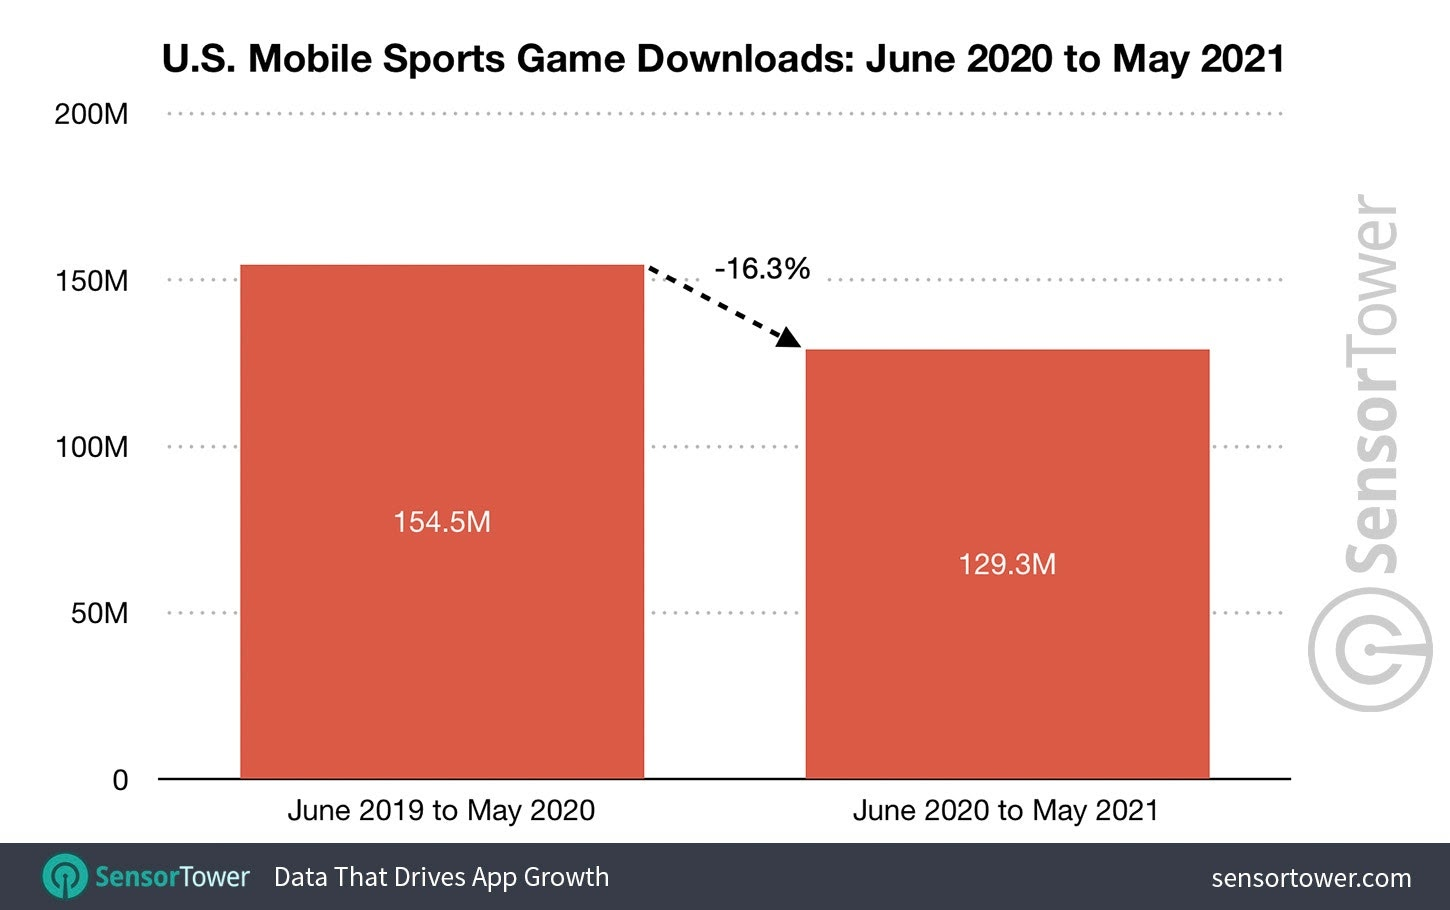 us_mobile_sports_game_downloads_2021